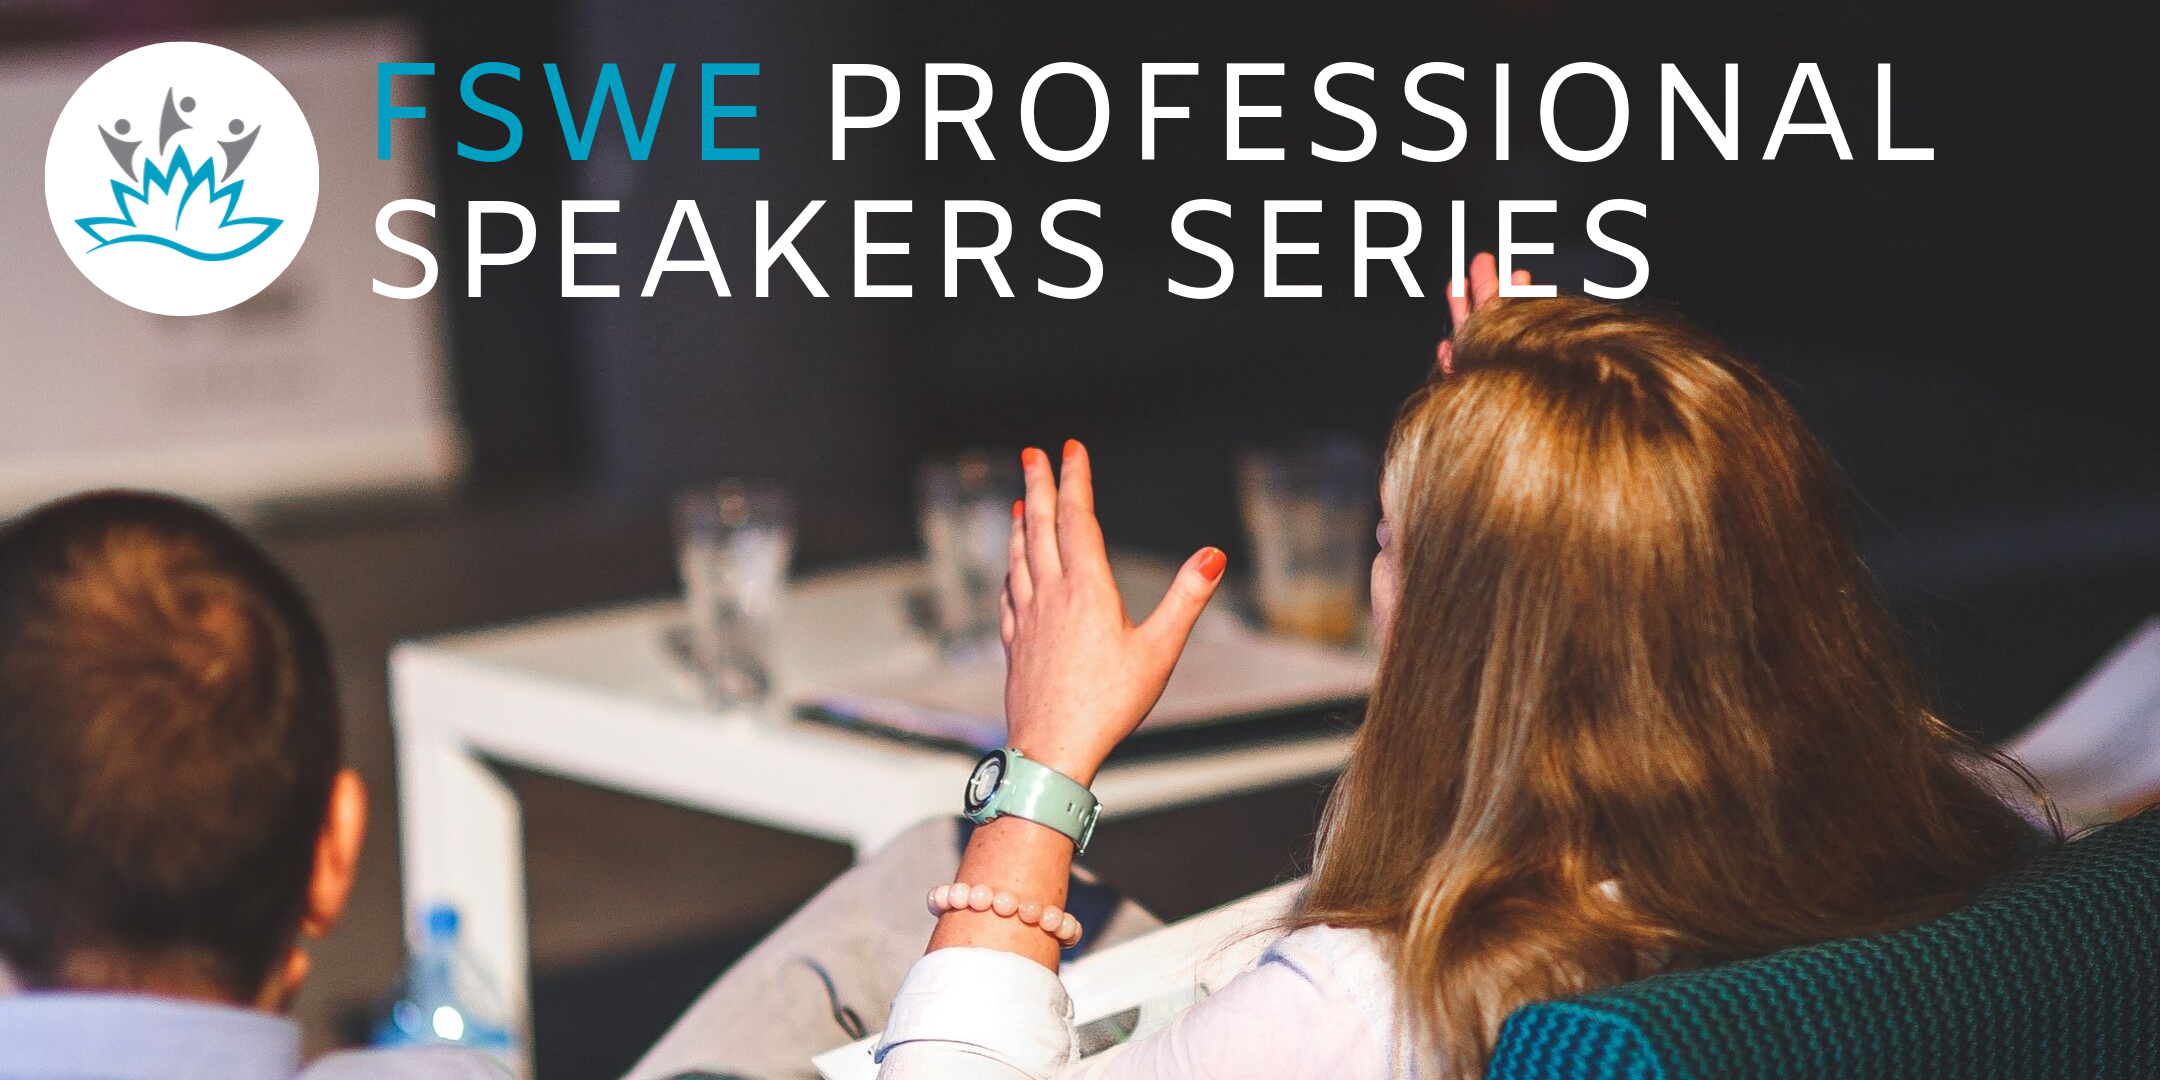 FSWE Professional Speakers Series Title and picture of people at a meeting